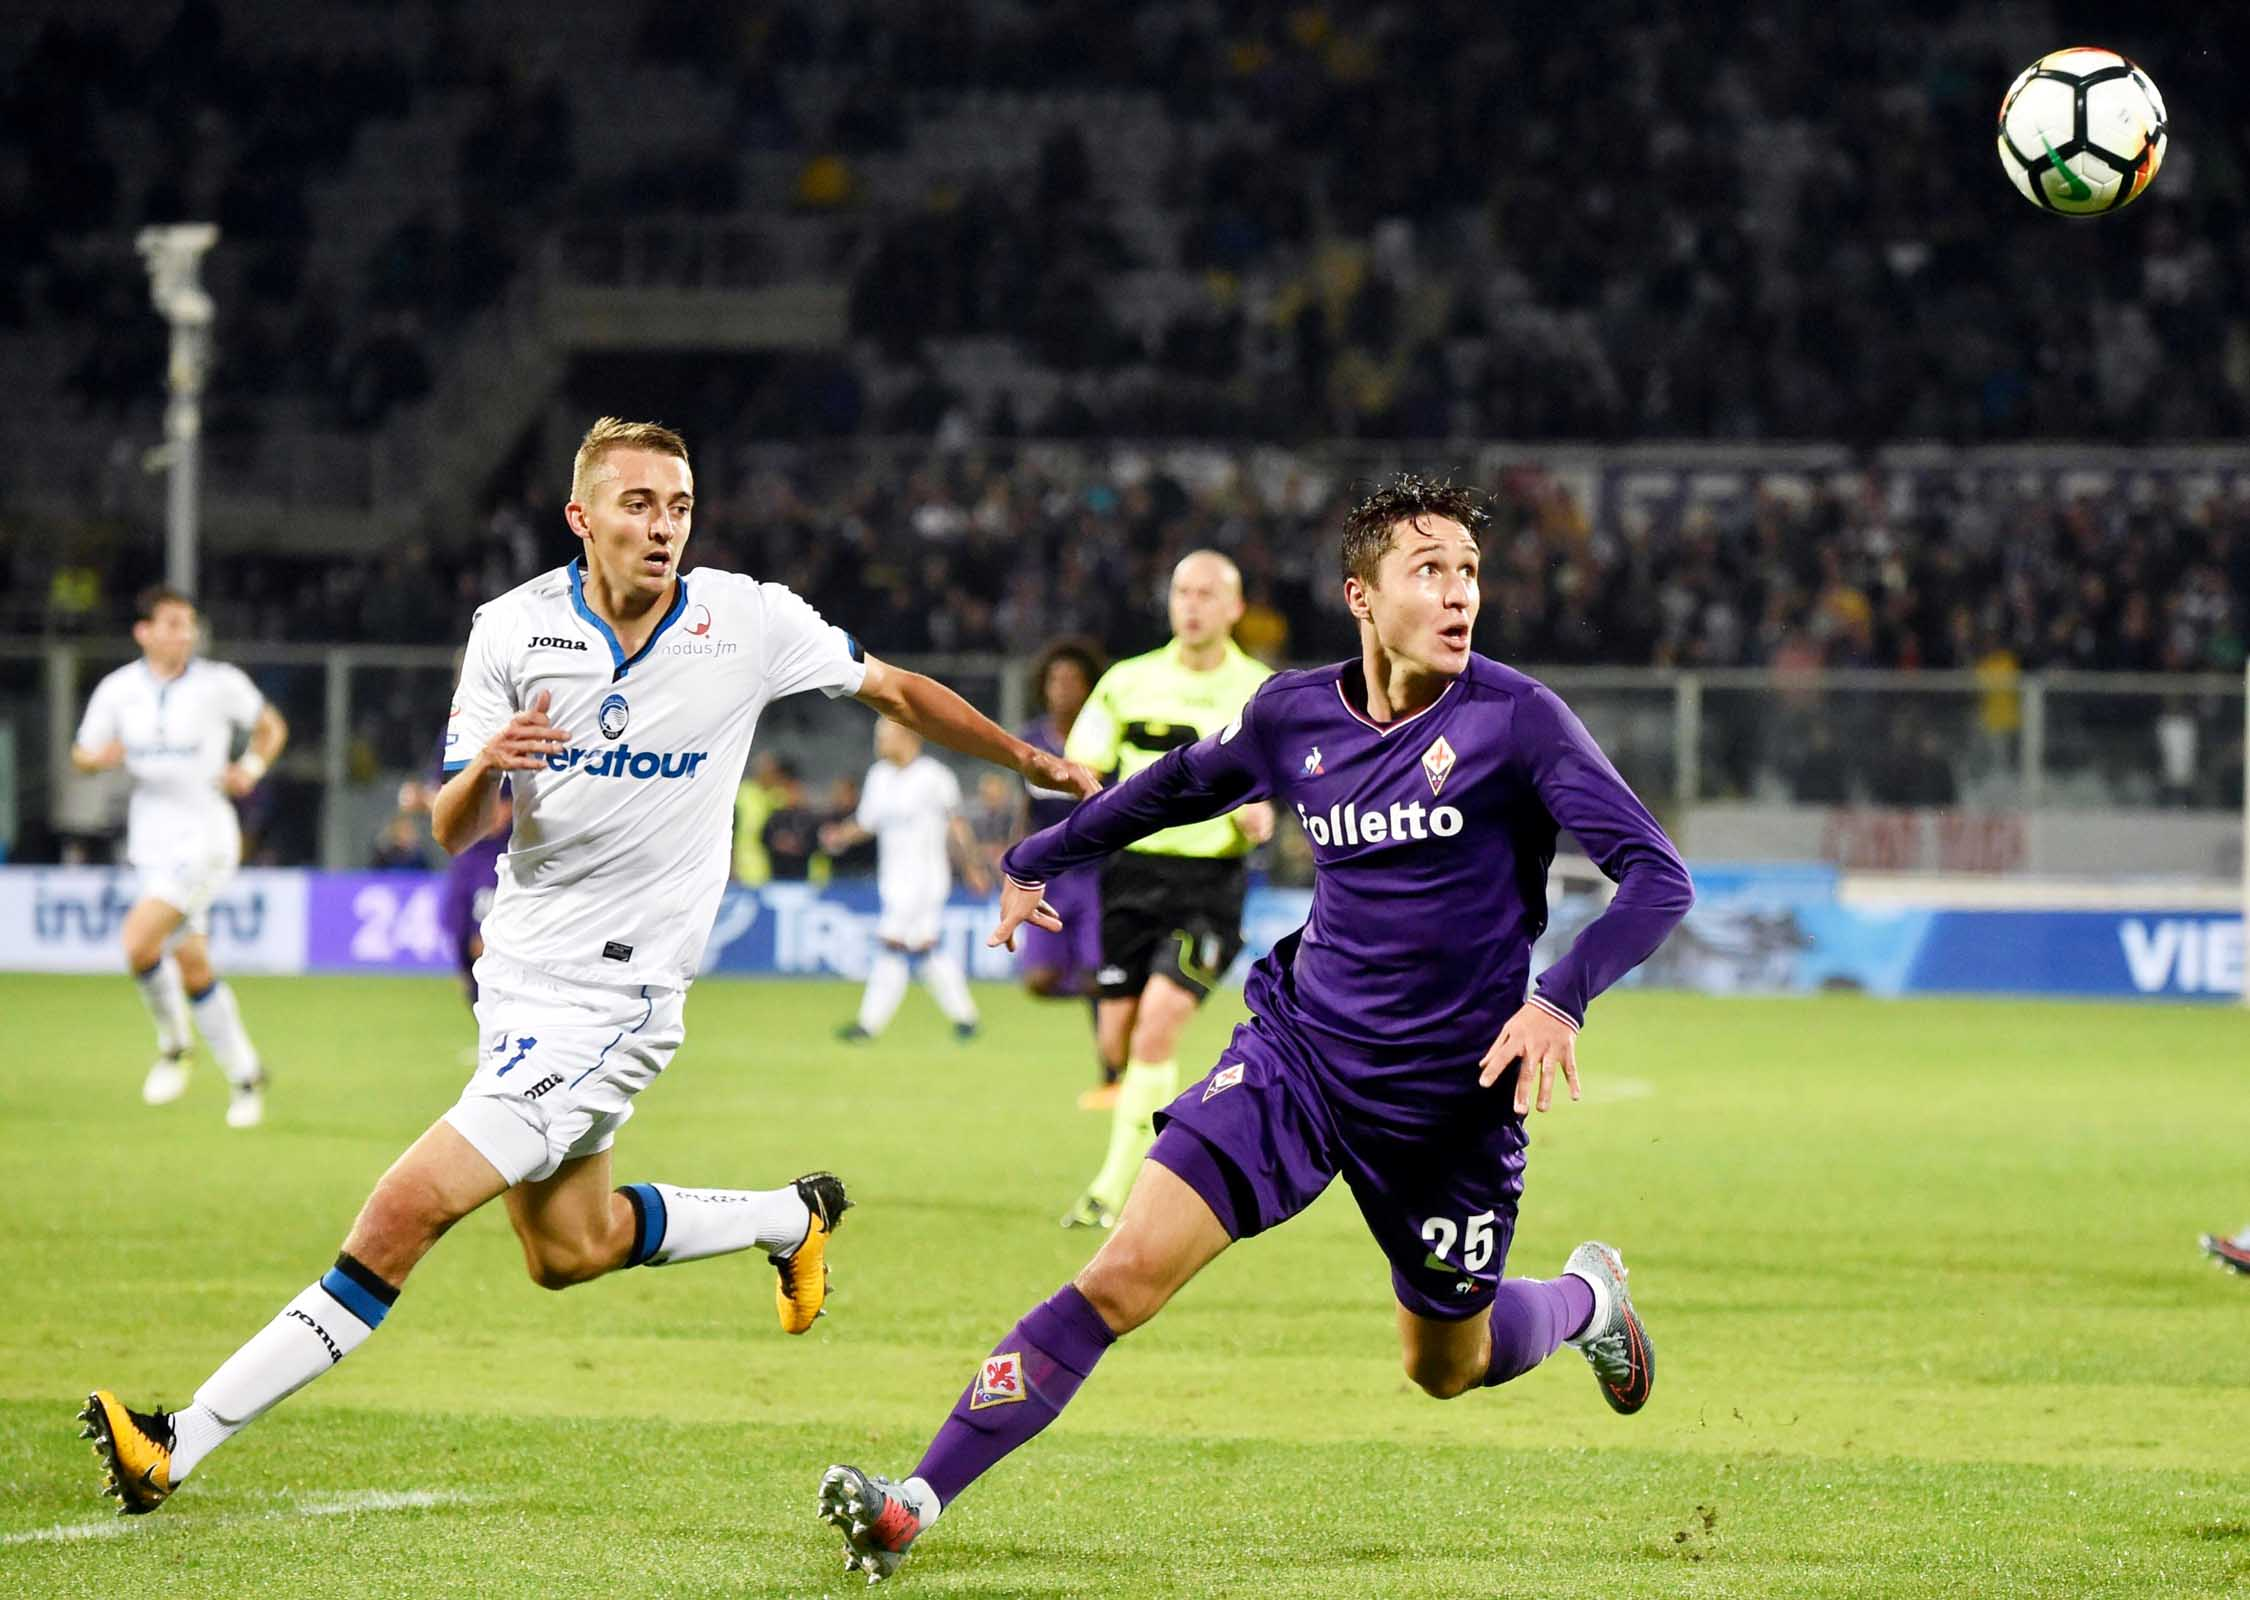 Fiorentina forward Federico Chiesa and Atalanta's Timothy Castagne (left) vie for the ball during the Italian Serie A soccer match between Fiorentina and Atalanta at the Artemio Franchi stadium in Florence, Italy on Sunday.